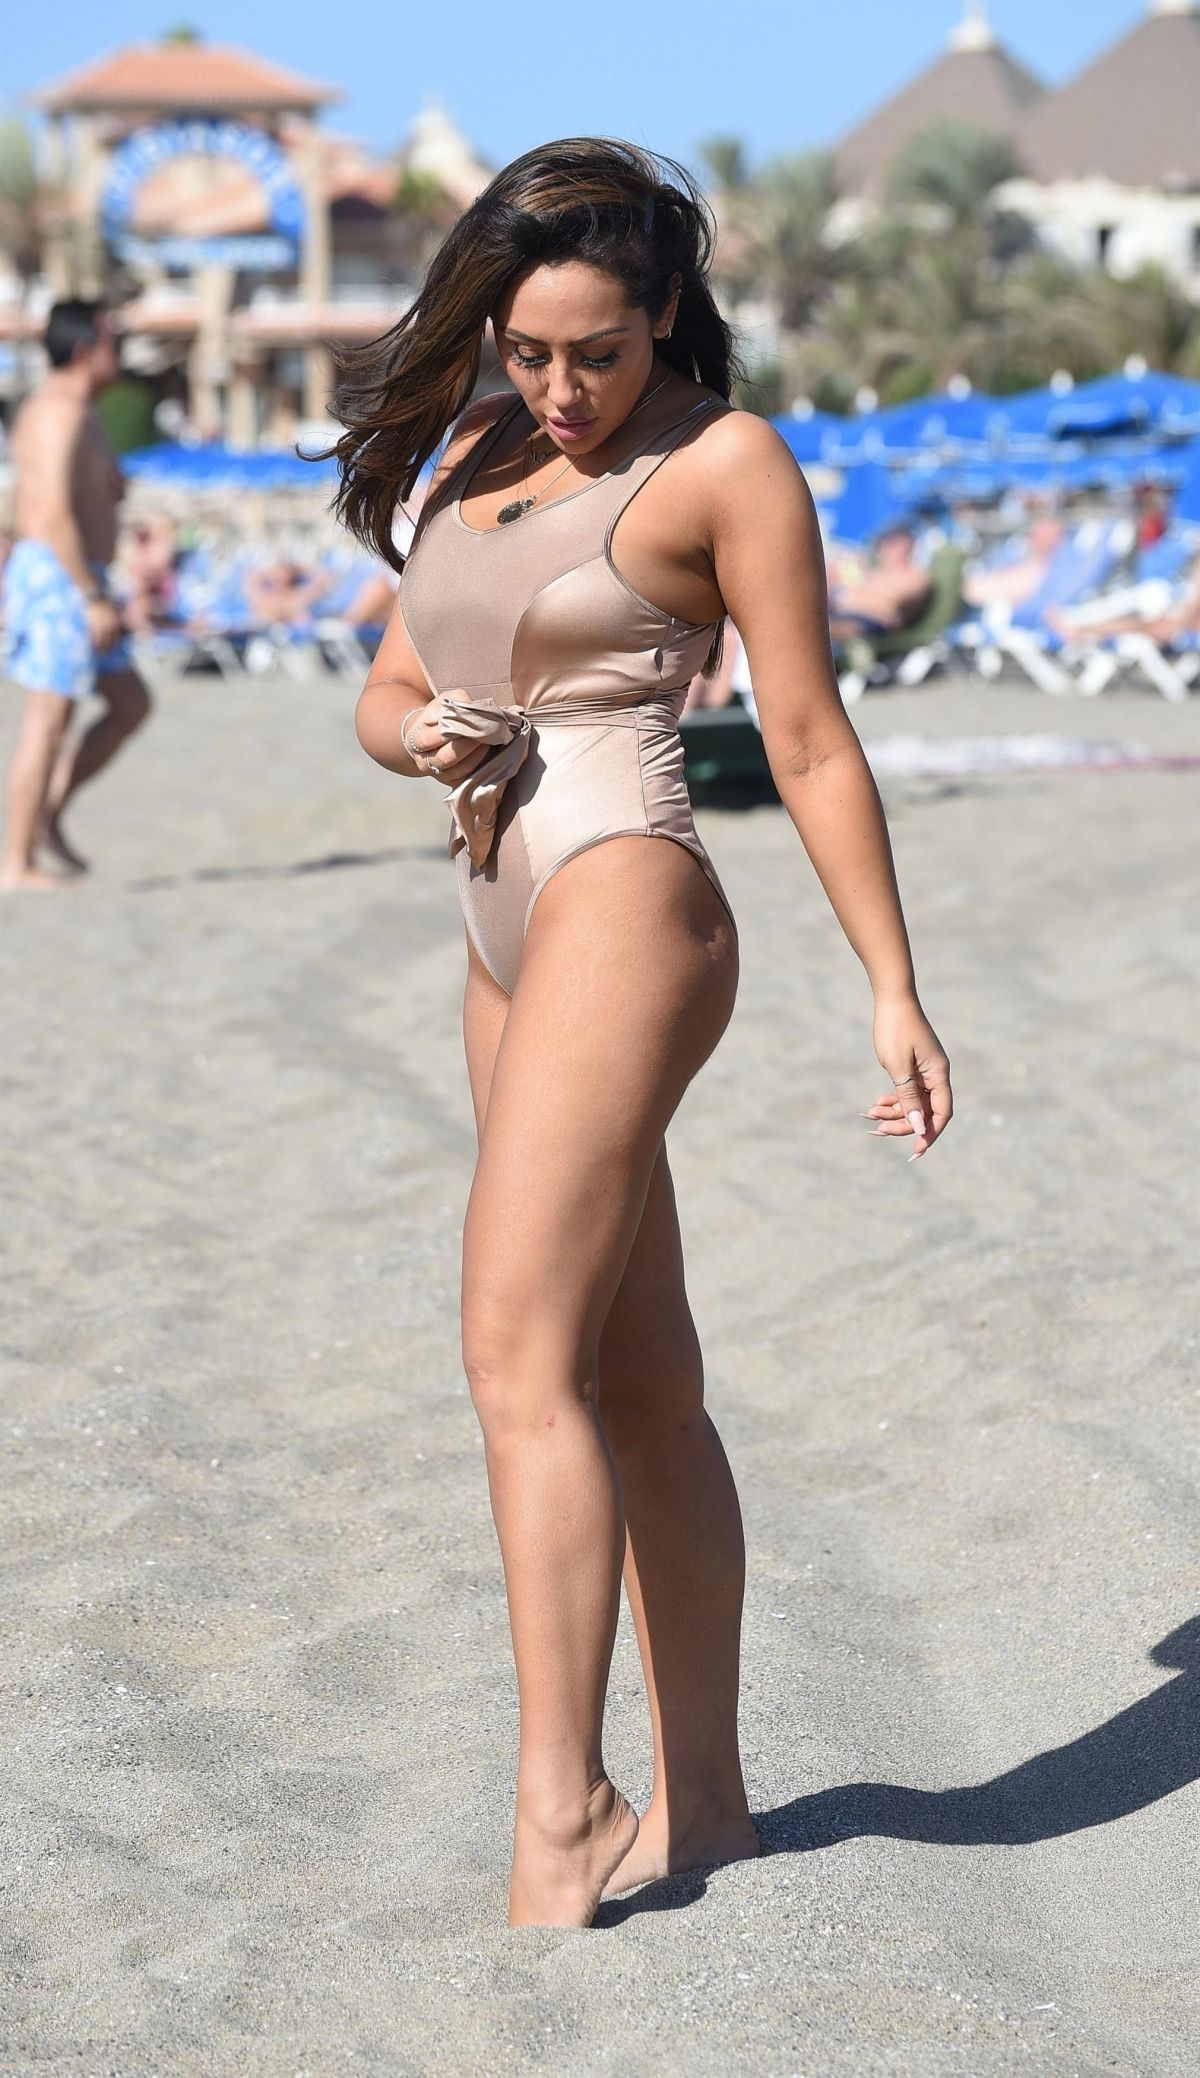 Sophie Kasaei in Pink Bikini on the beach in Lanzarote Pic 12 of 35